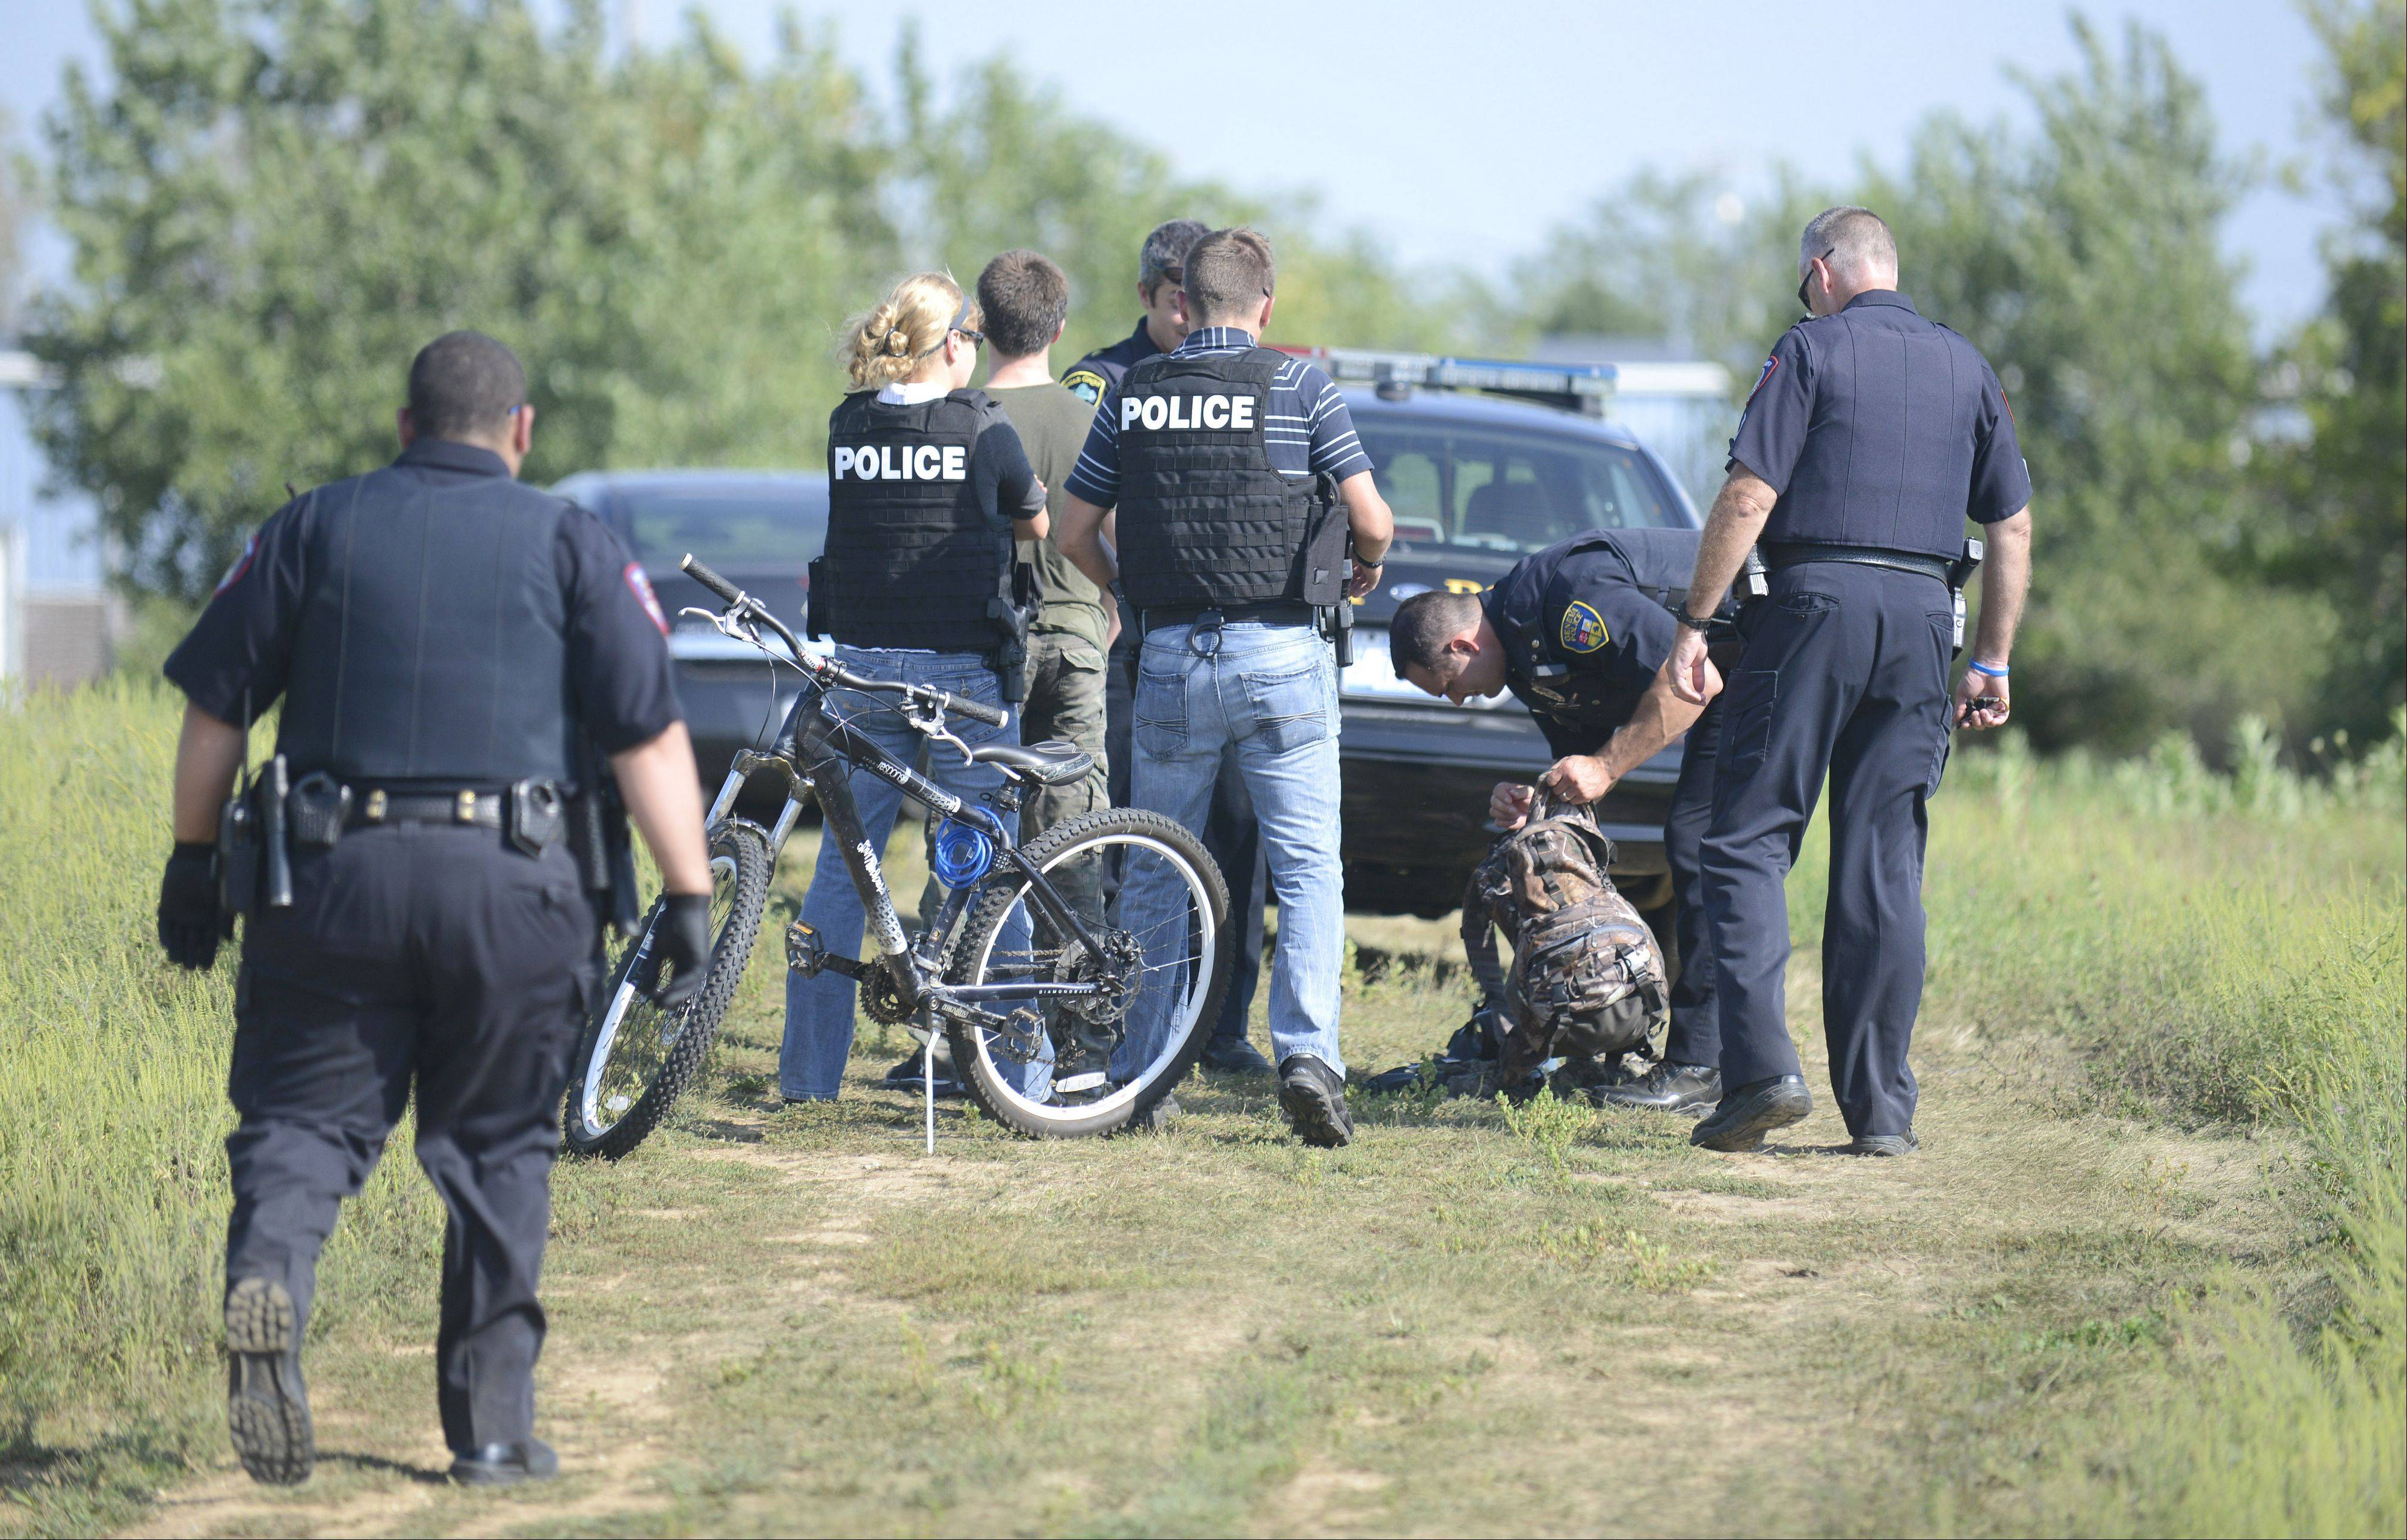 Kane County Sheriff's Department officers check the contents of a backpack Friday near Kaneland John Stewart Elementary School in Elburn after three 13-year-old boys were taken into custody following reports of suspicious activity near the school.